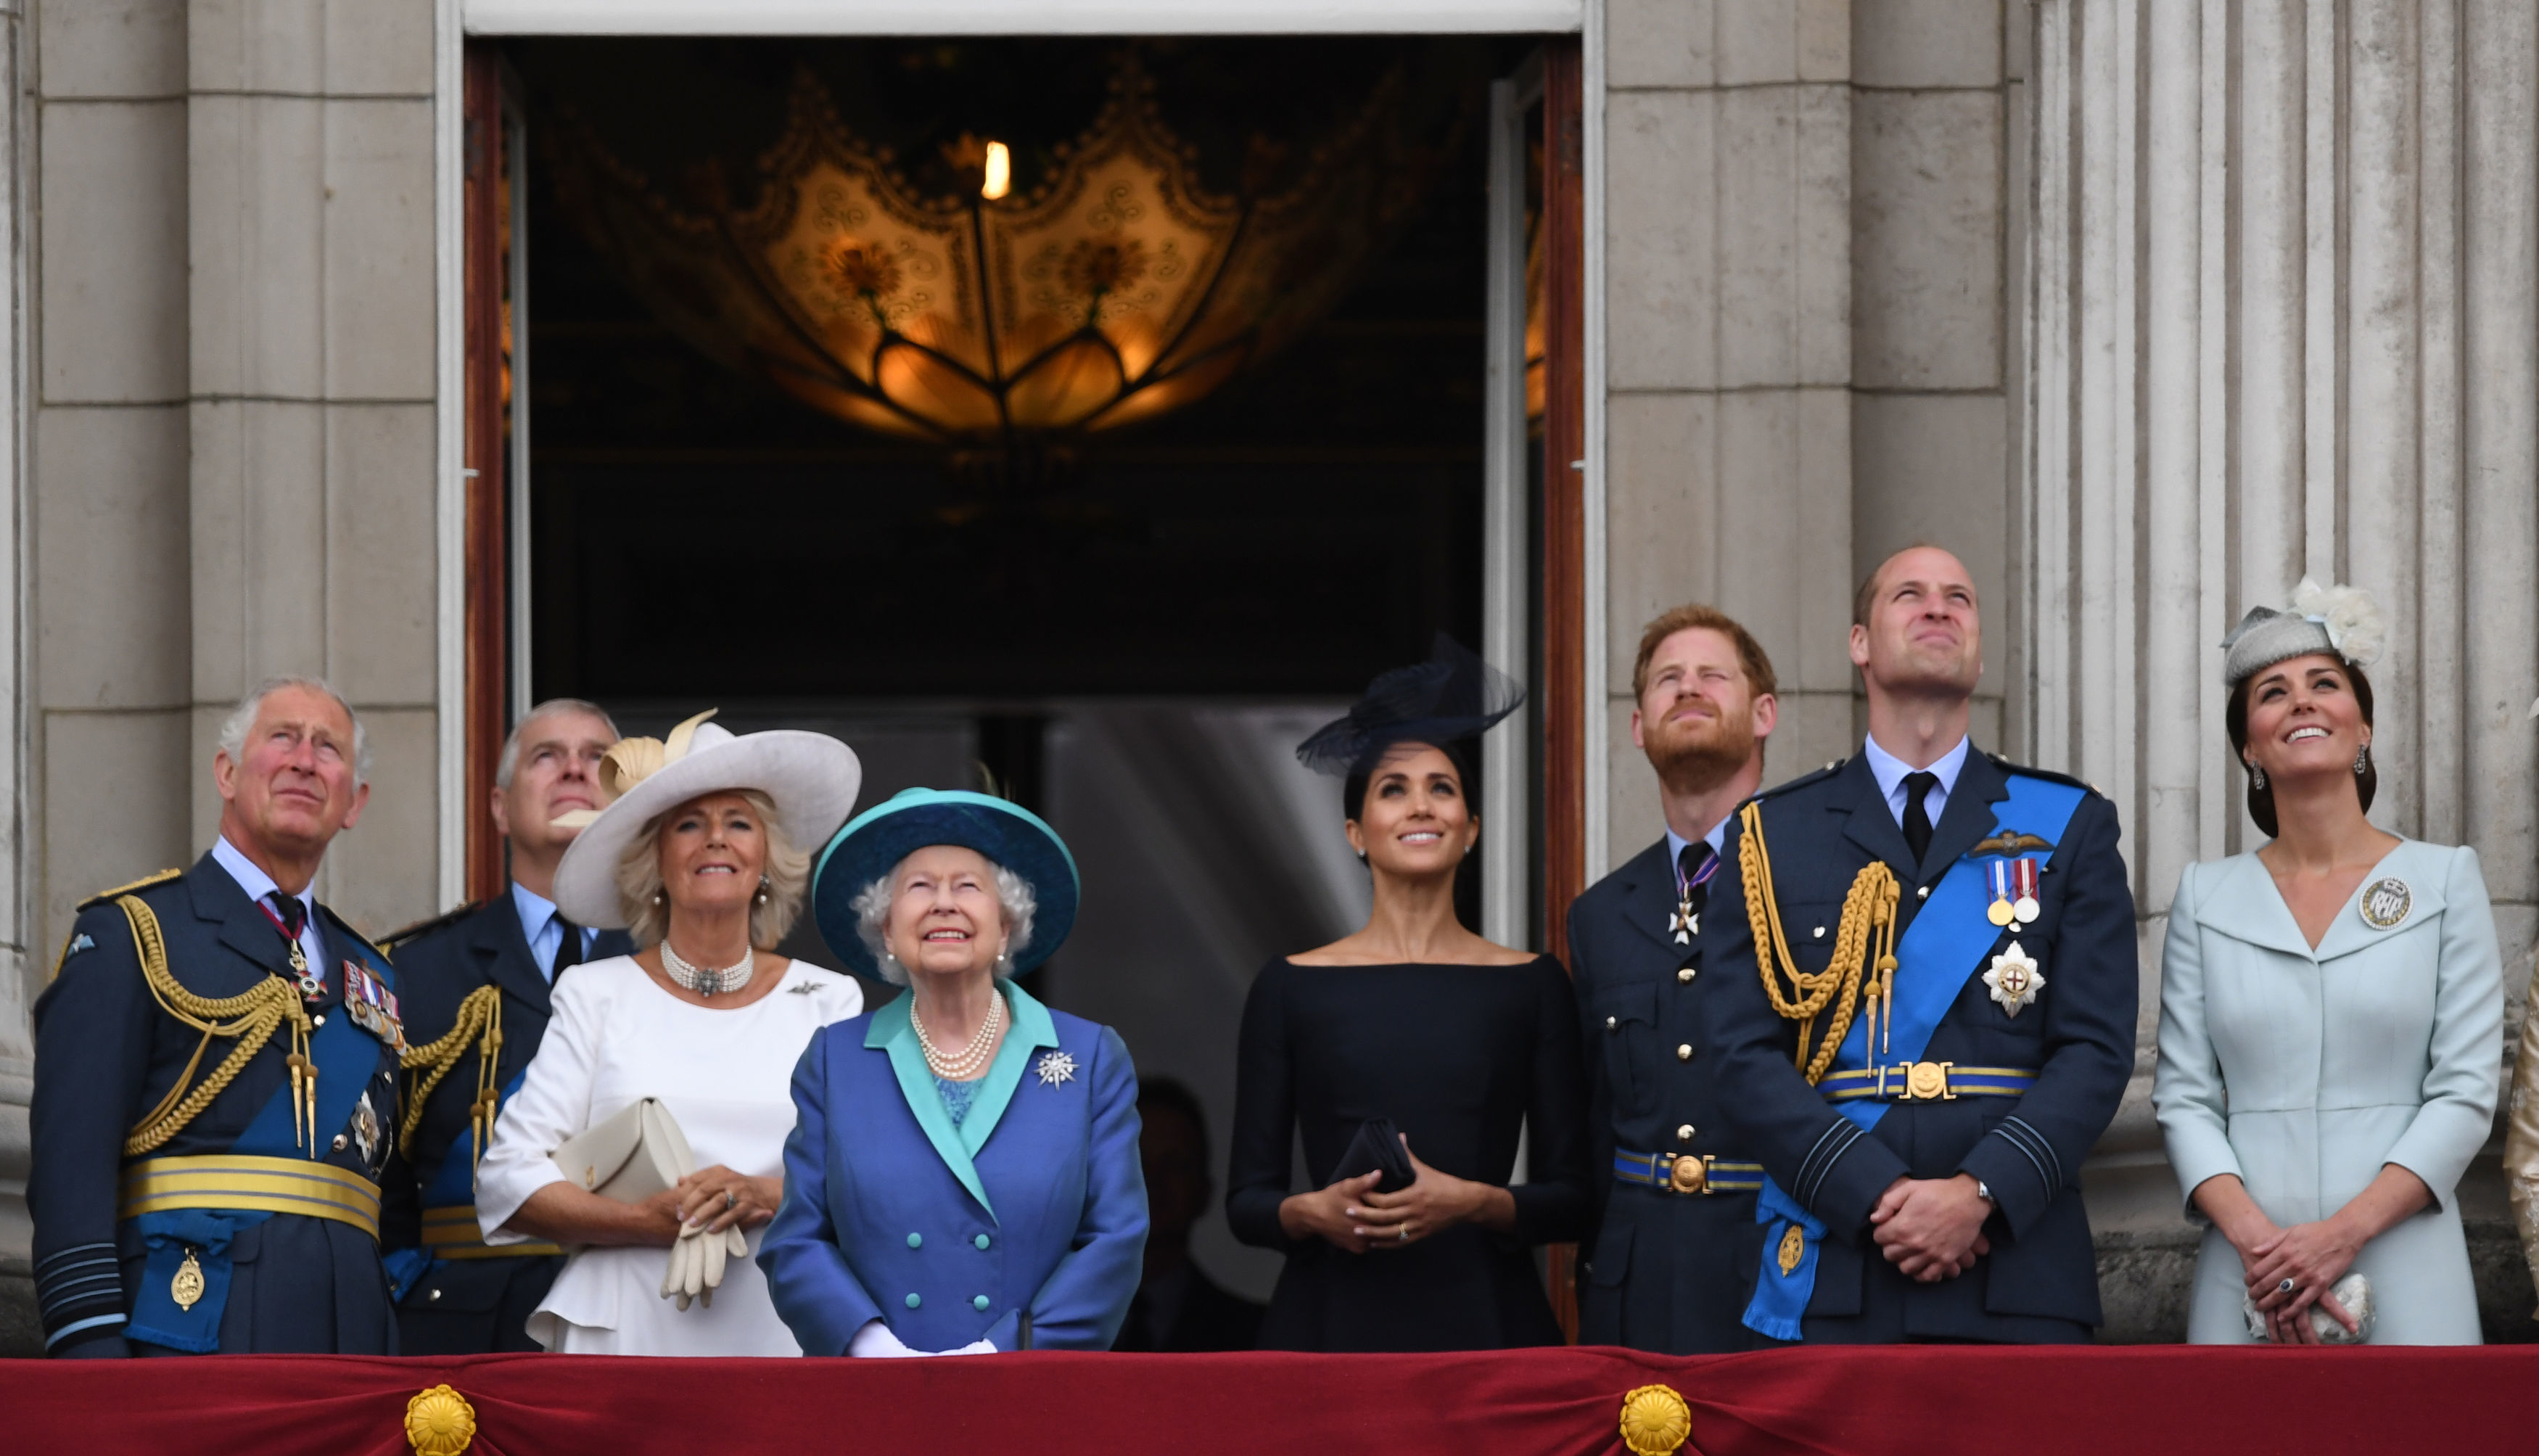 The Royal Family at RAF 100